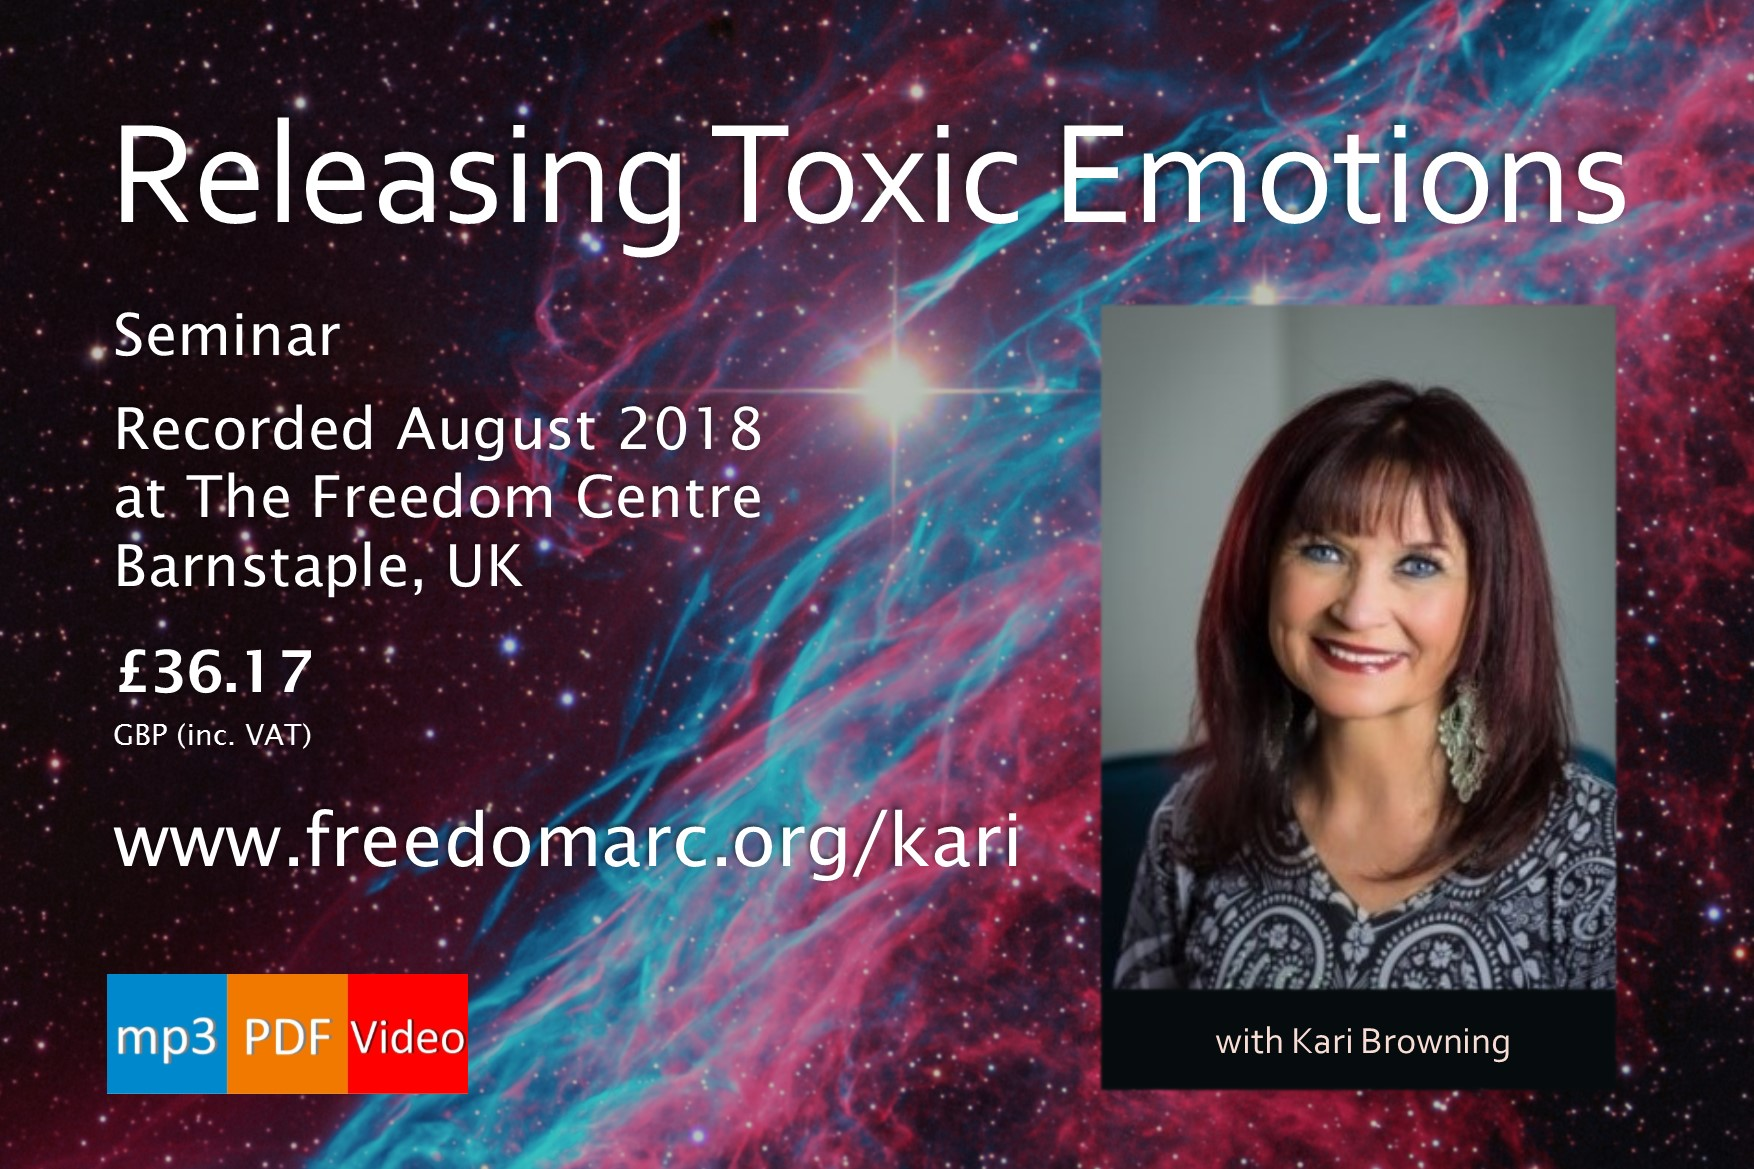 Releasing Toxic Emotions